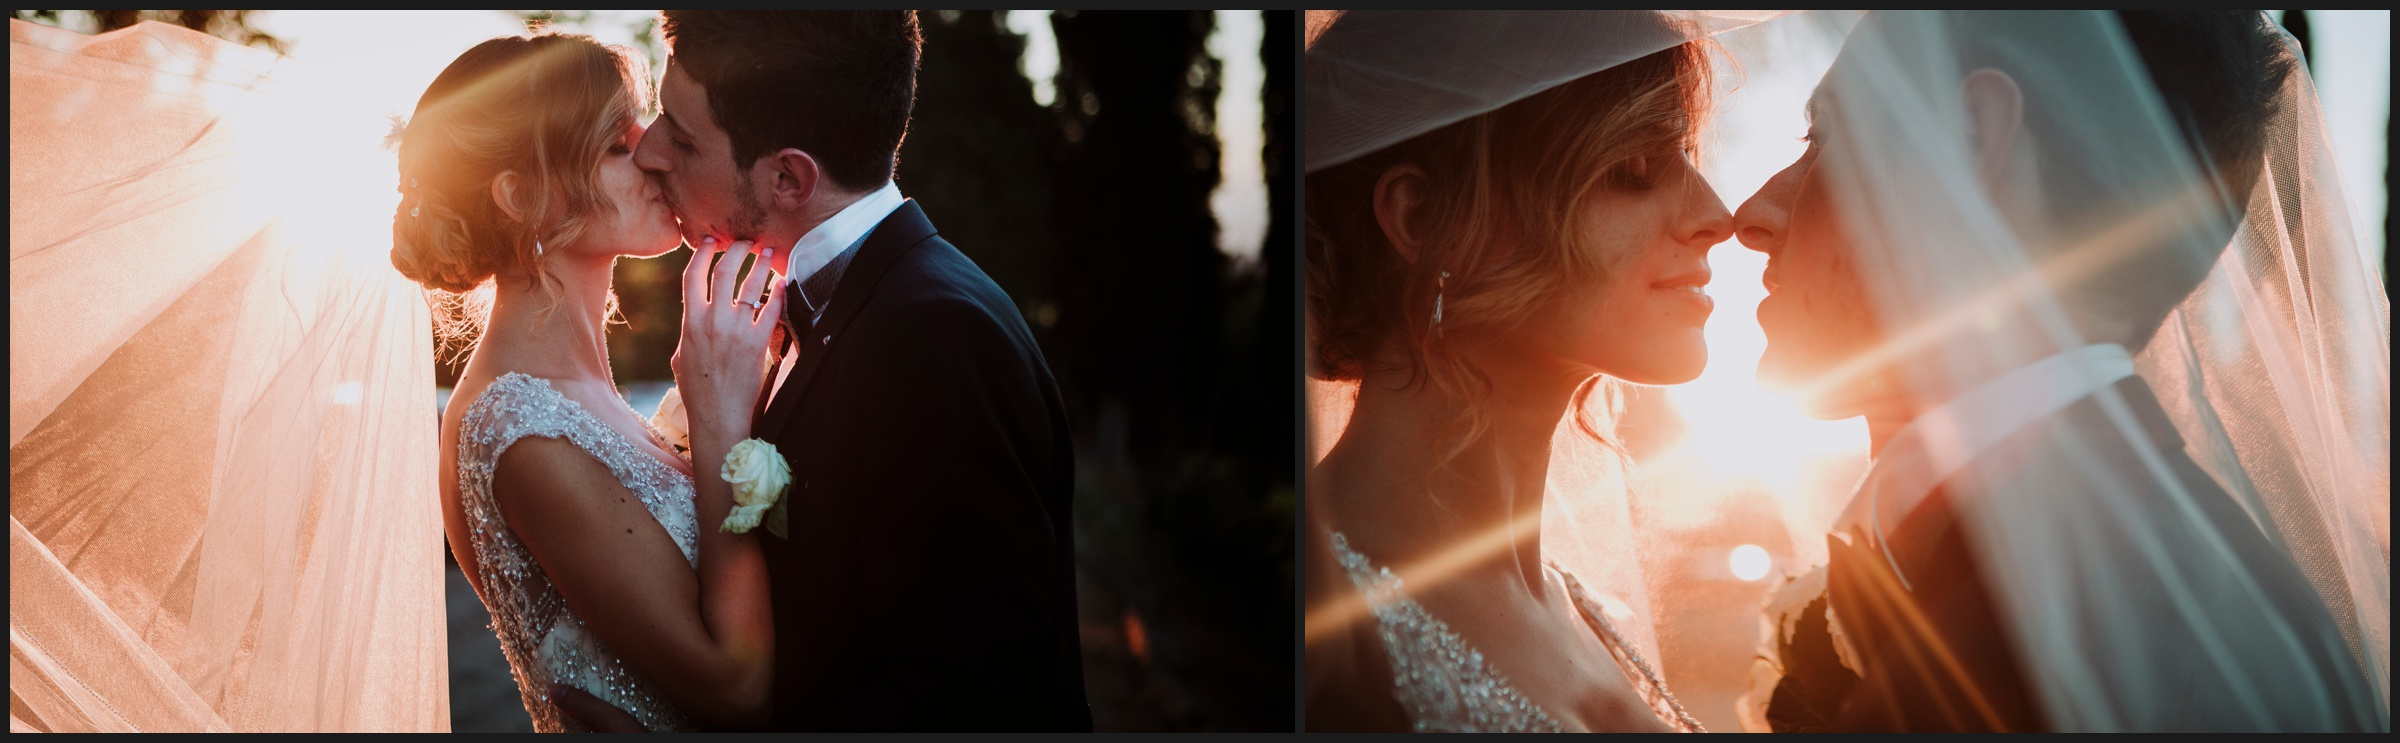 romantic moments for bride and groom